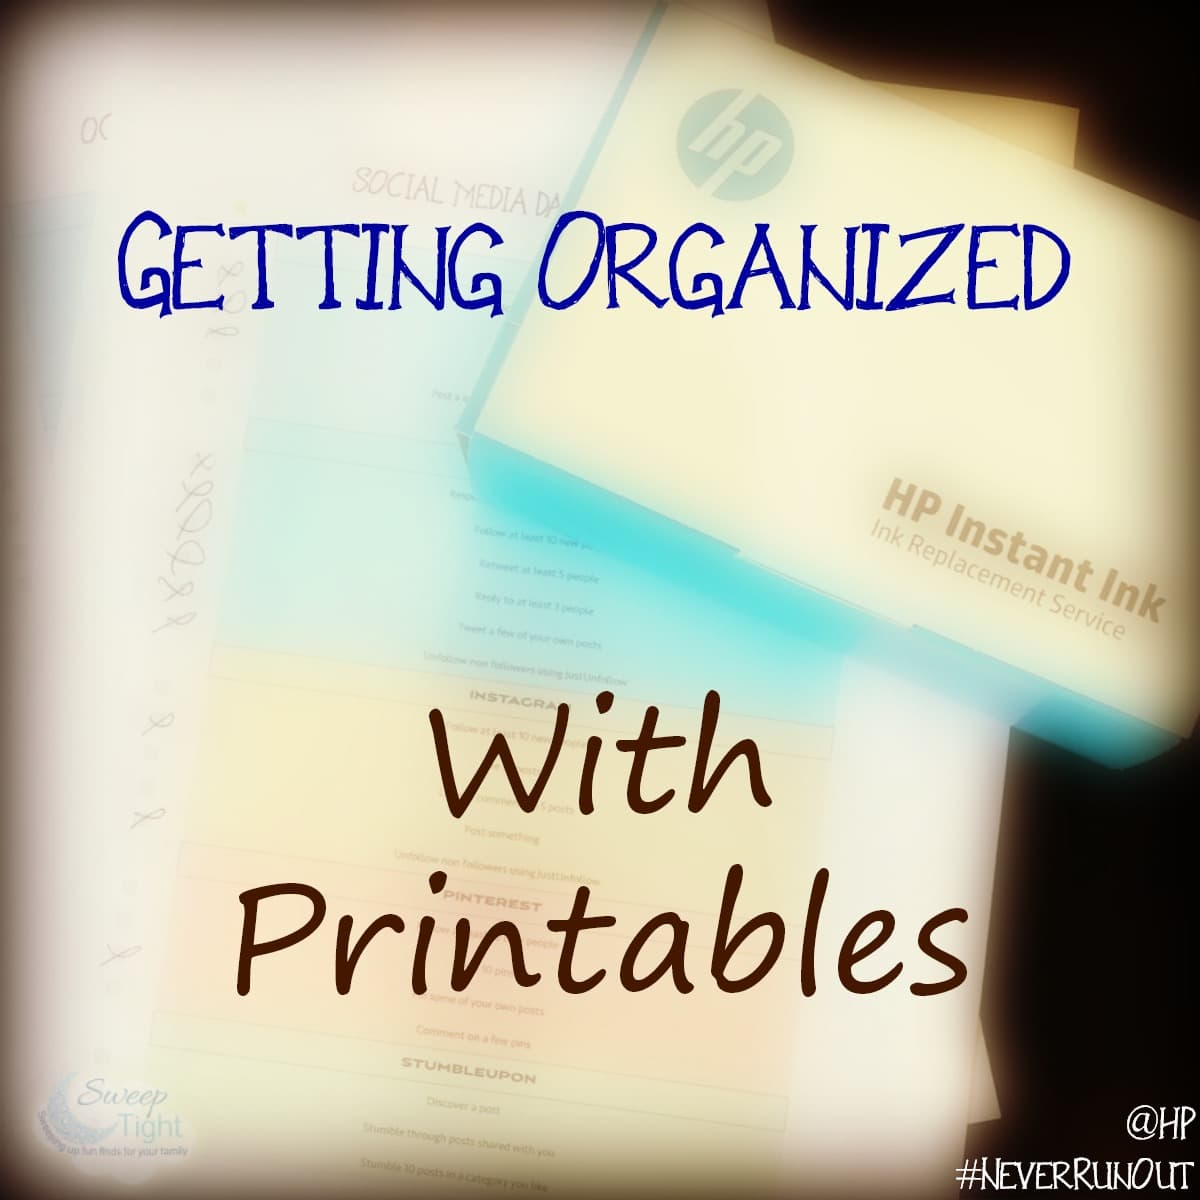 Hp Instant Ink Is Helping Me Get Organized